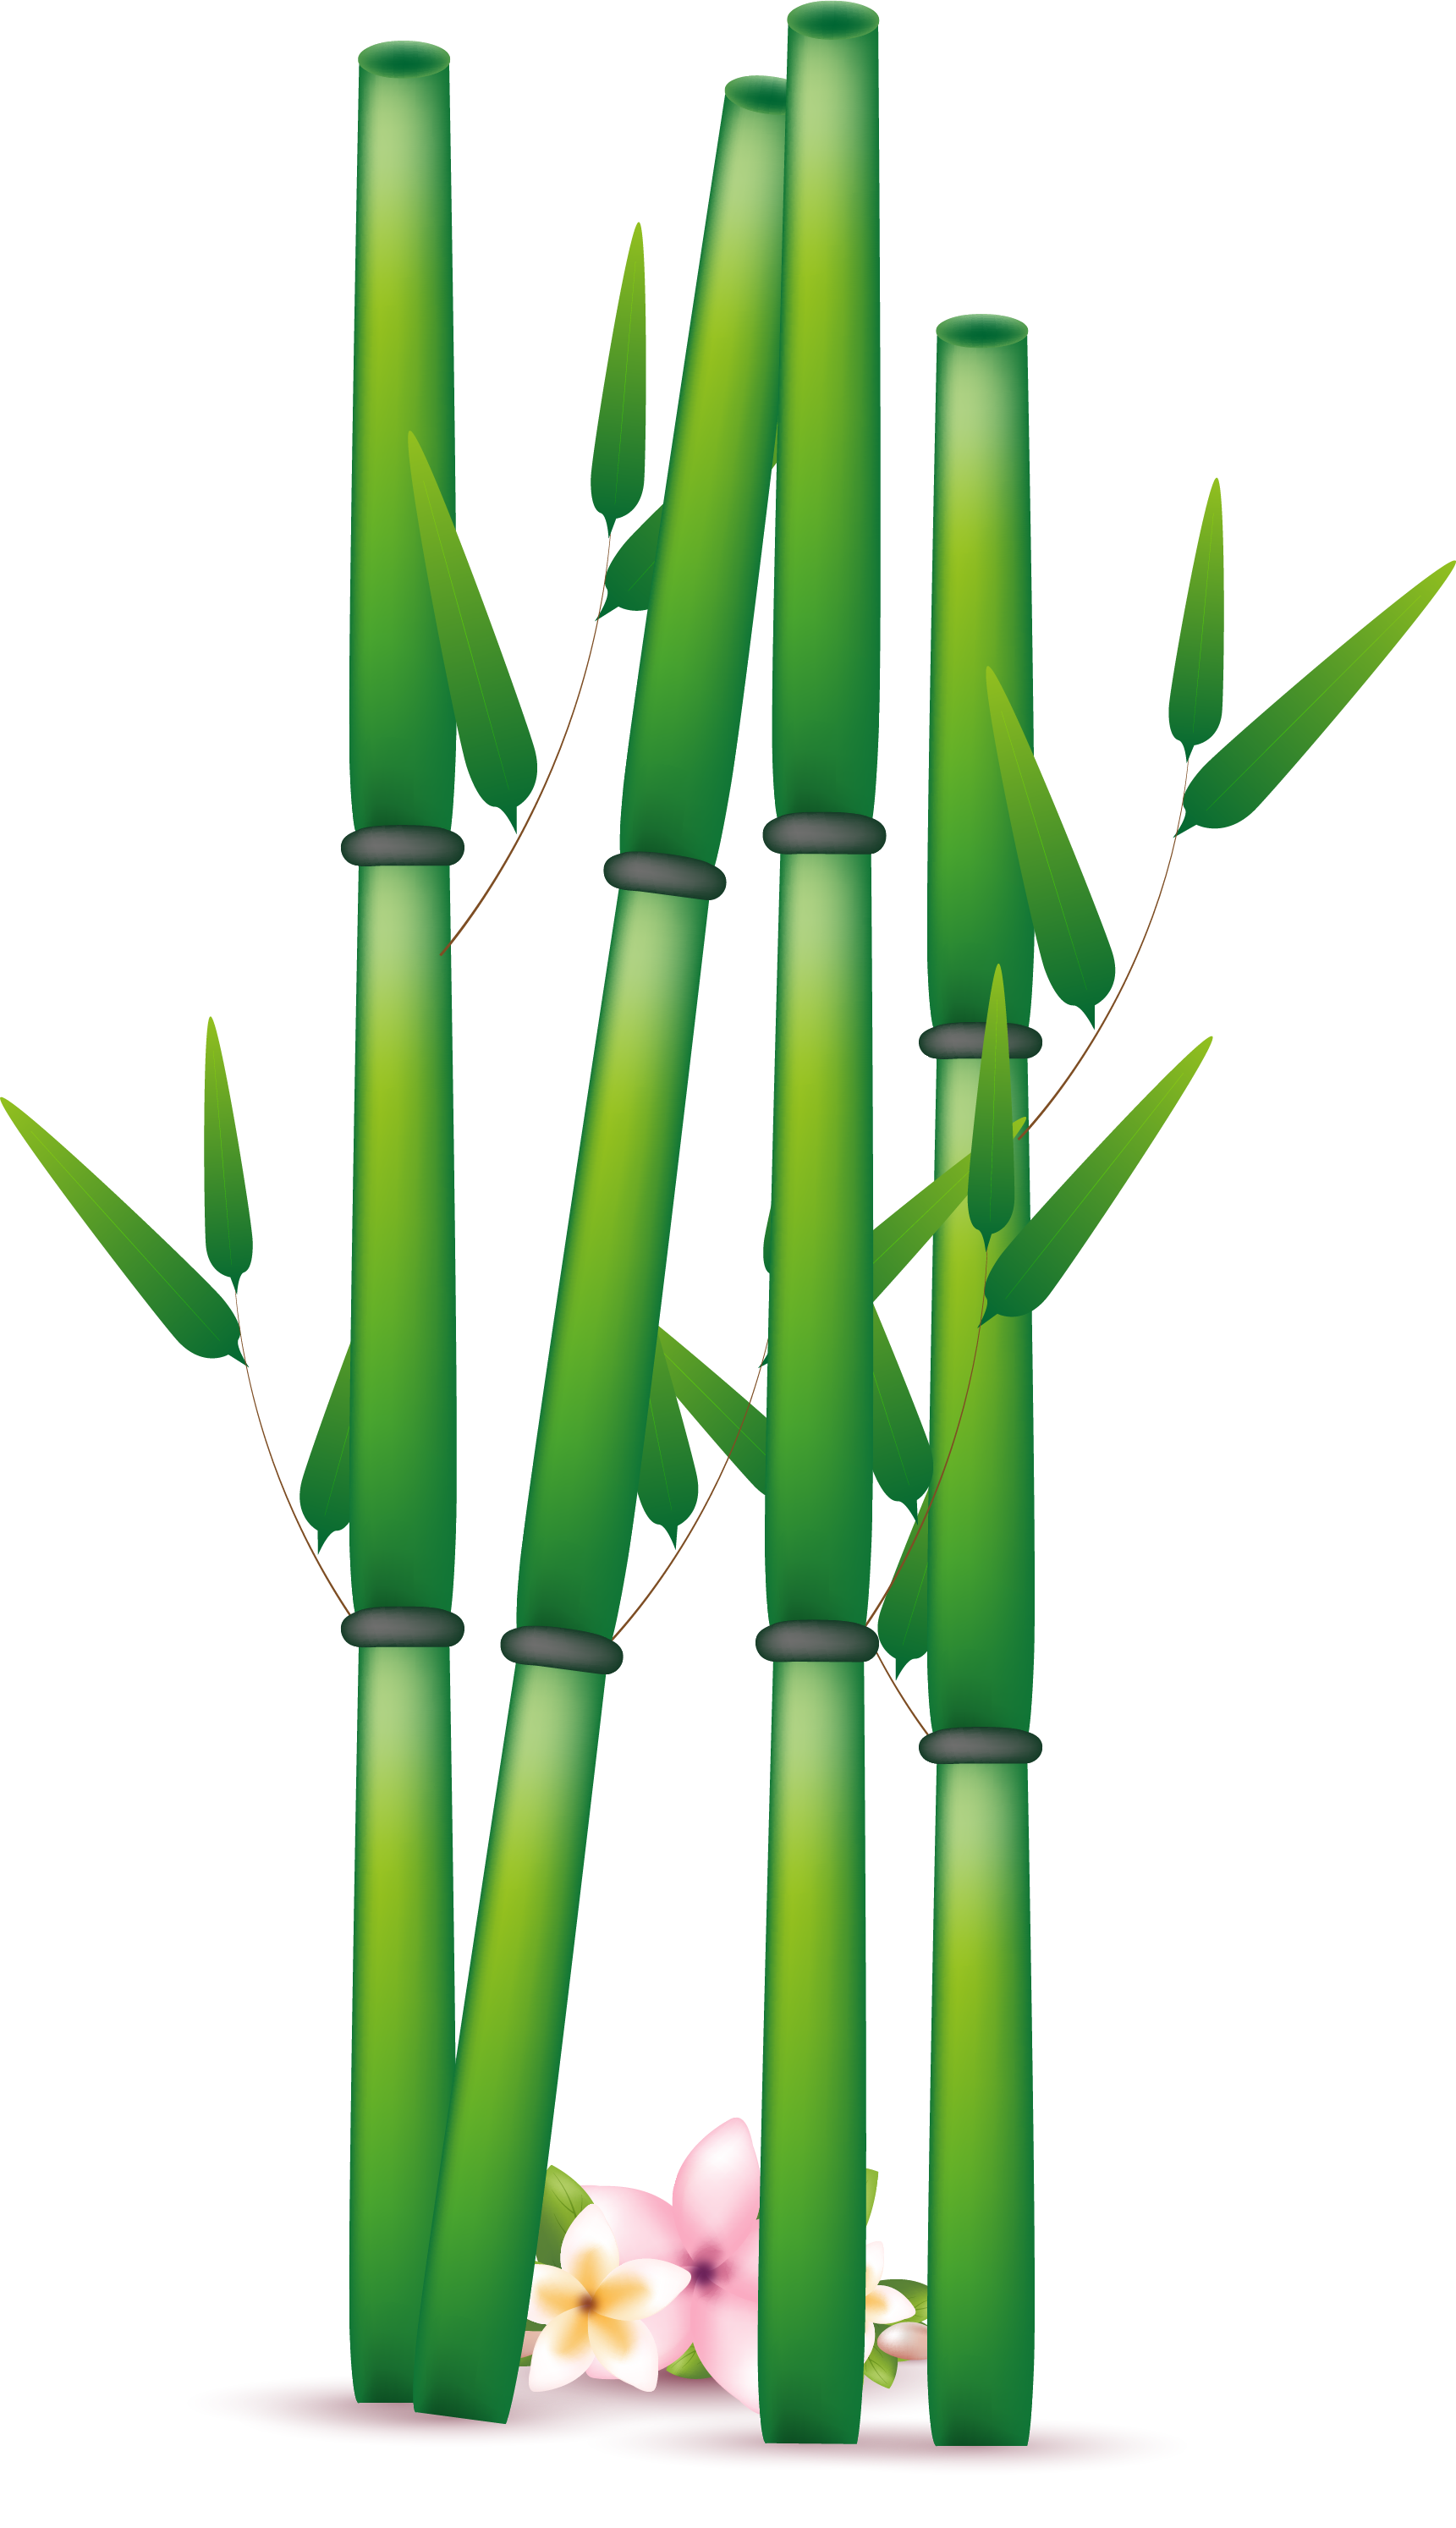 Bamboo forest house clipart png transparent download Bamboo PNG Transparent Free Images | PNG Only png transparent download